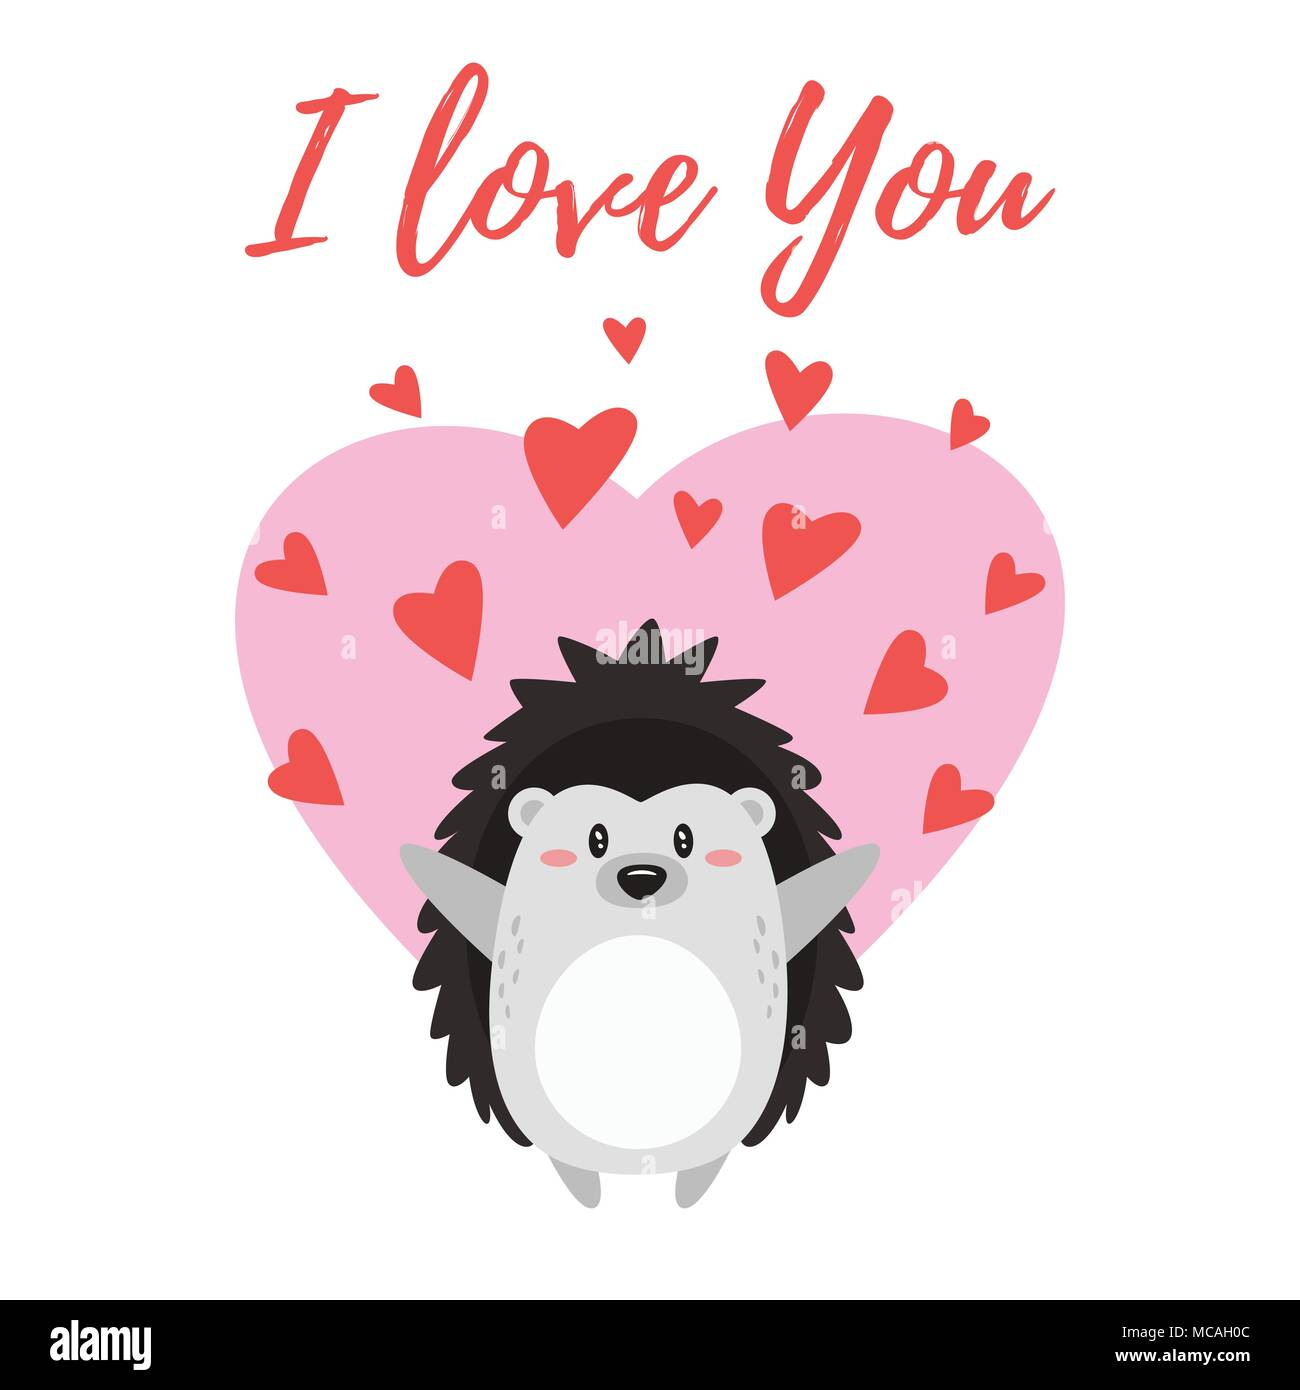 Vector cartoon style illustration of Valentine's day romantic gift card with cute hedgehog surrounded by hearts. I love You text. - Stock Image